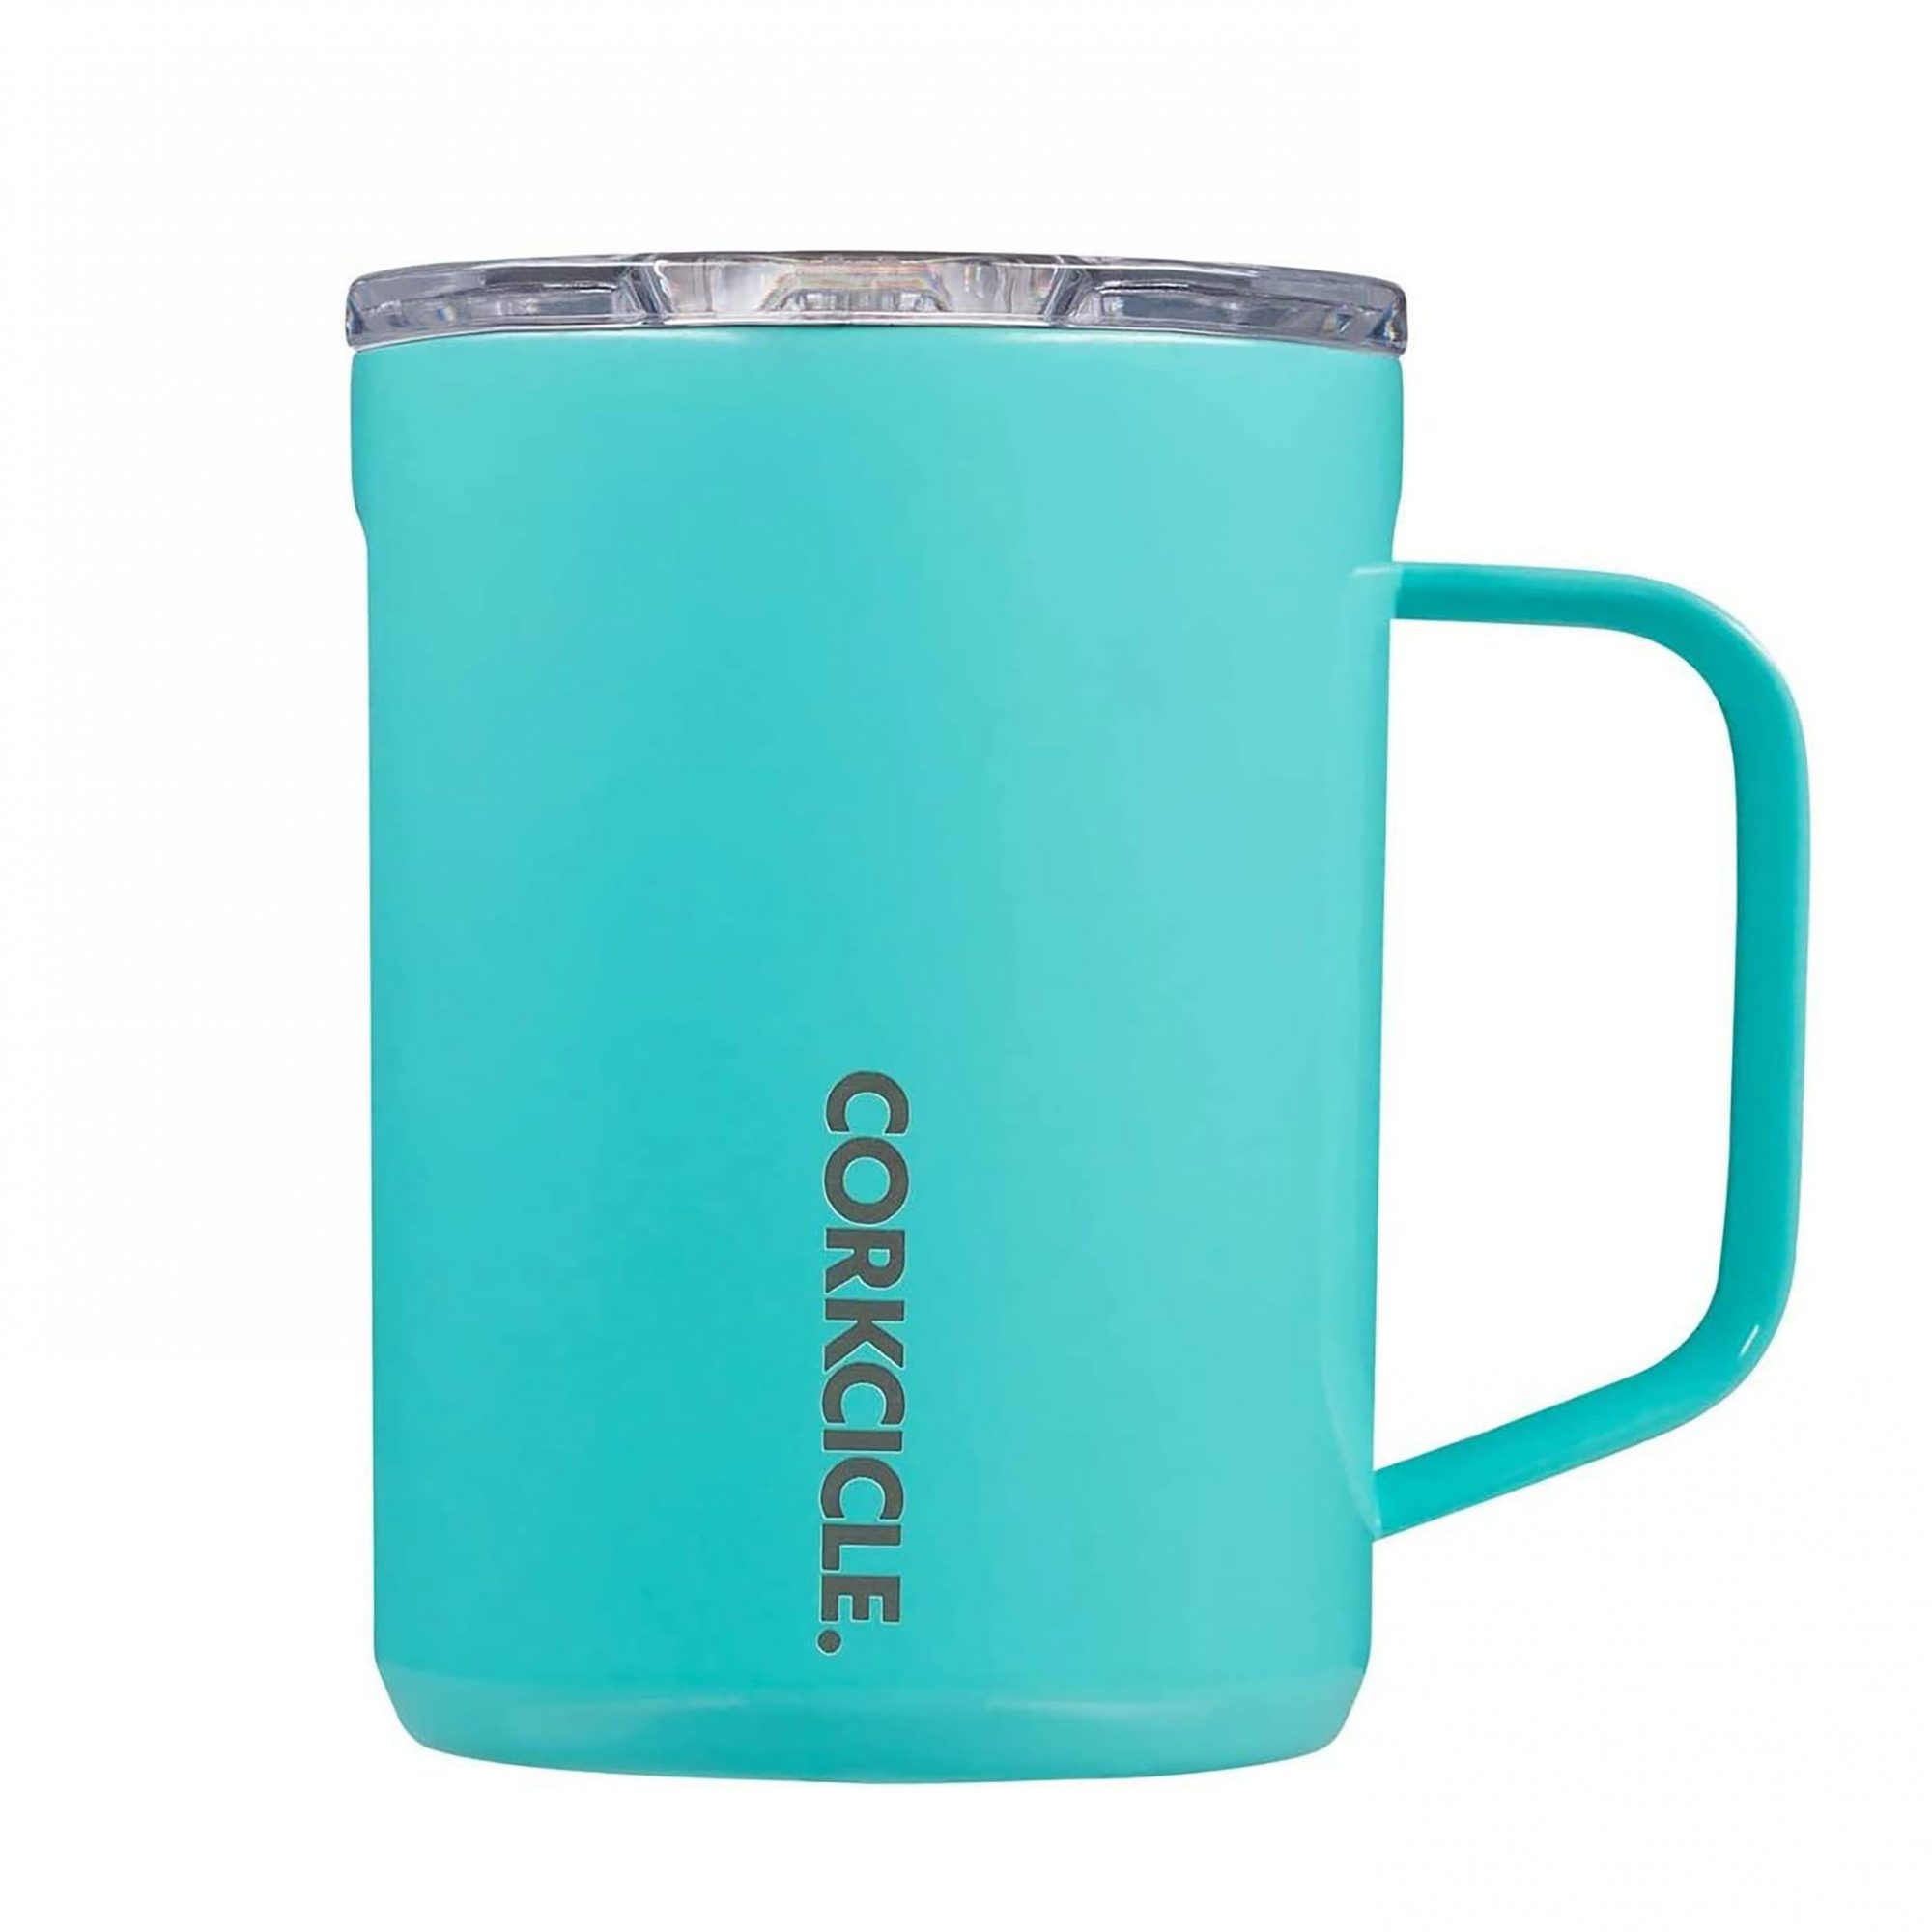 Teal corkcicle mug with lid on white background